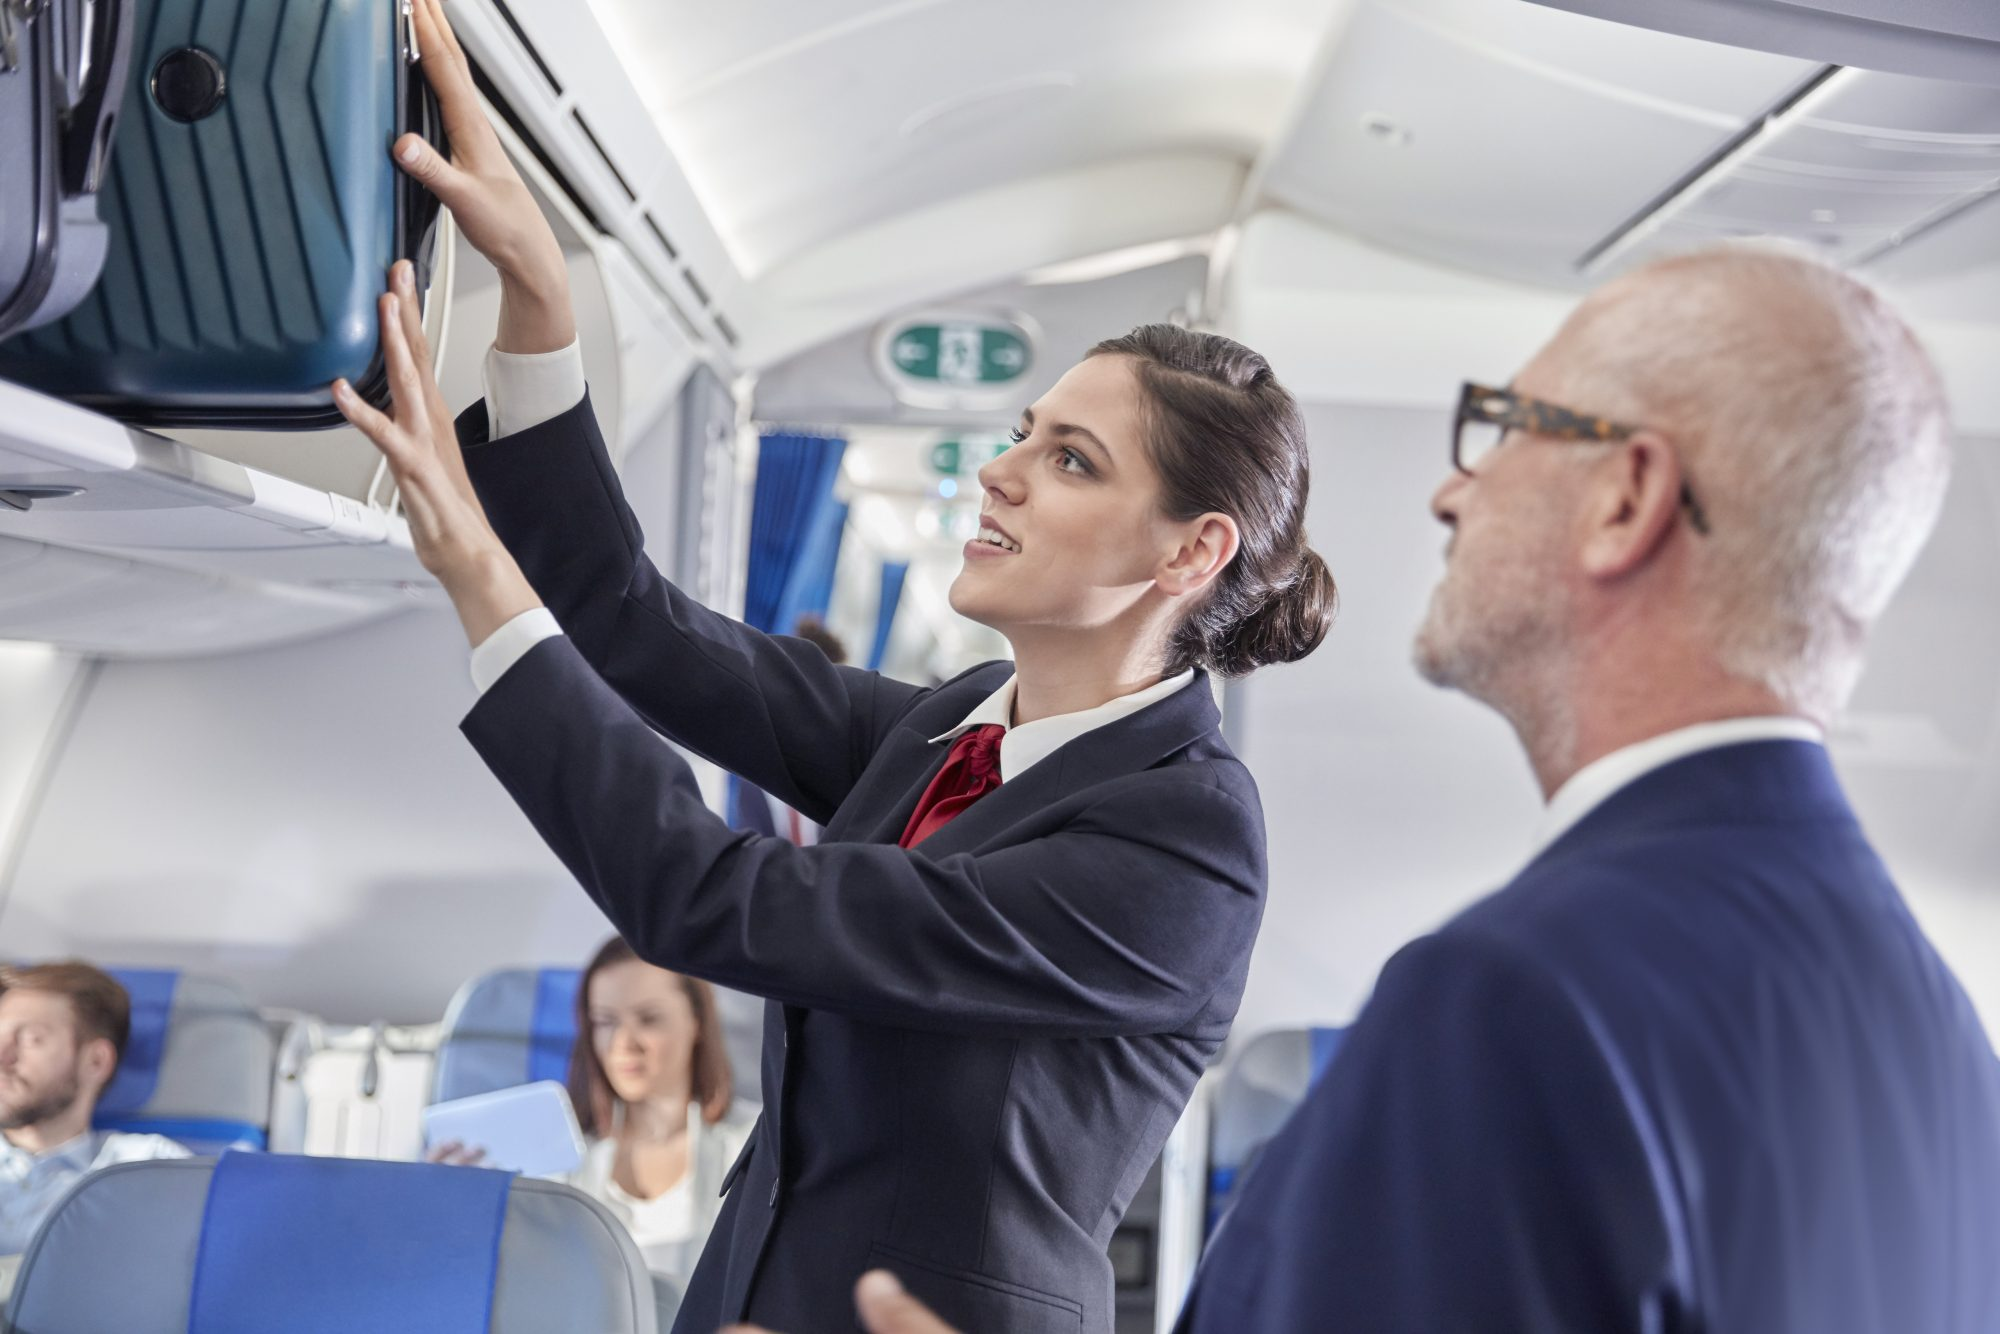 Flight Attendant Helping Man with Overhead Bin